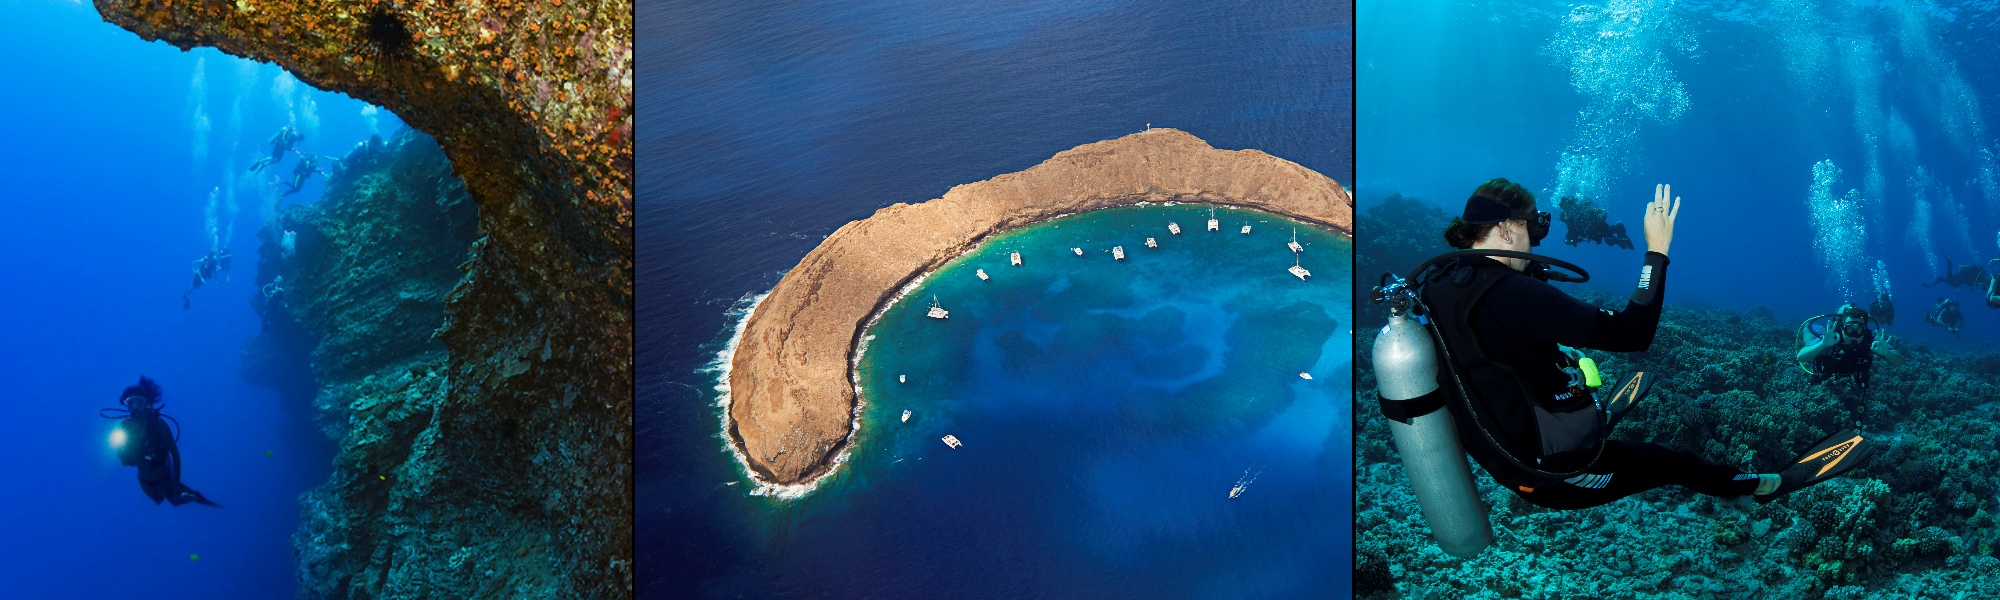 Maui Dive Shop Molokini Backwall Adventure Dive